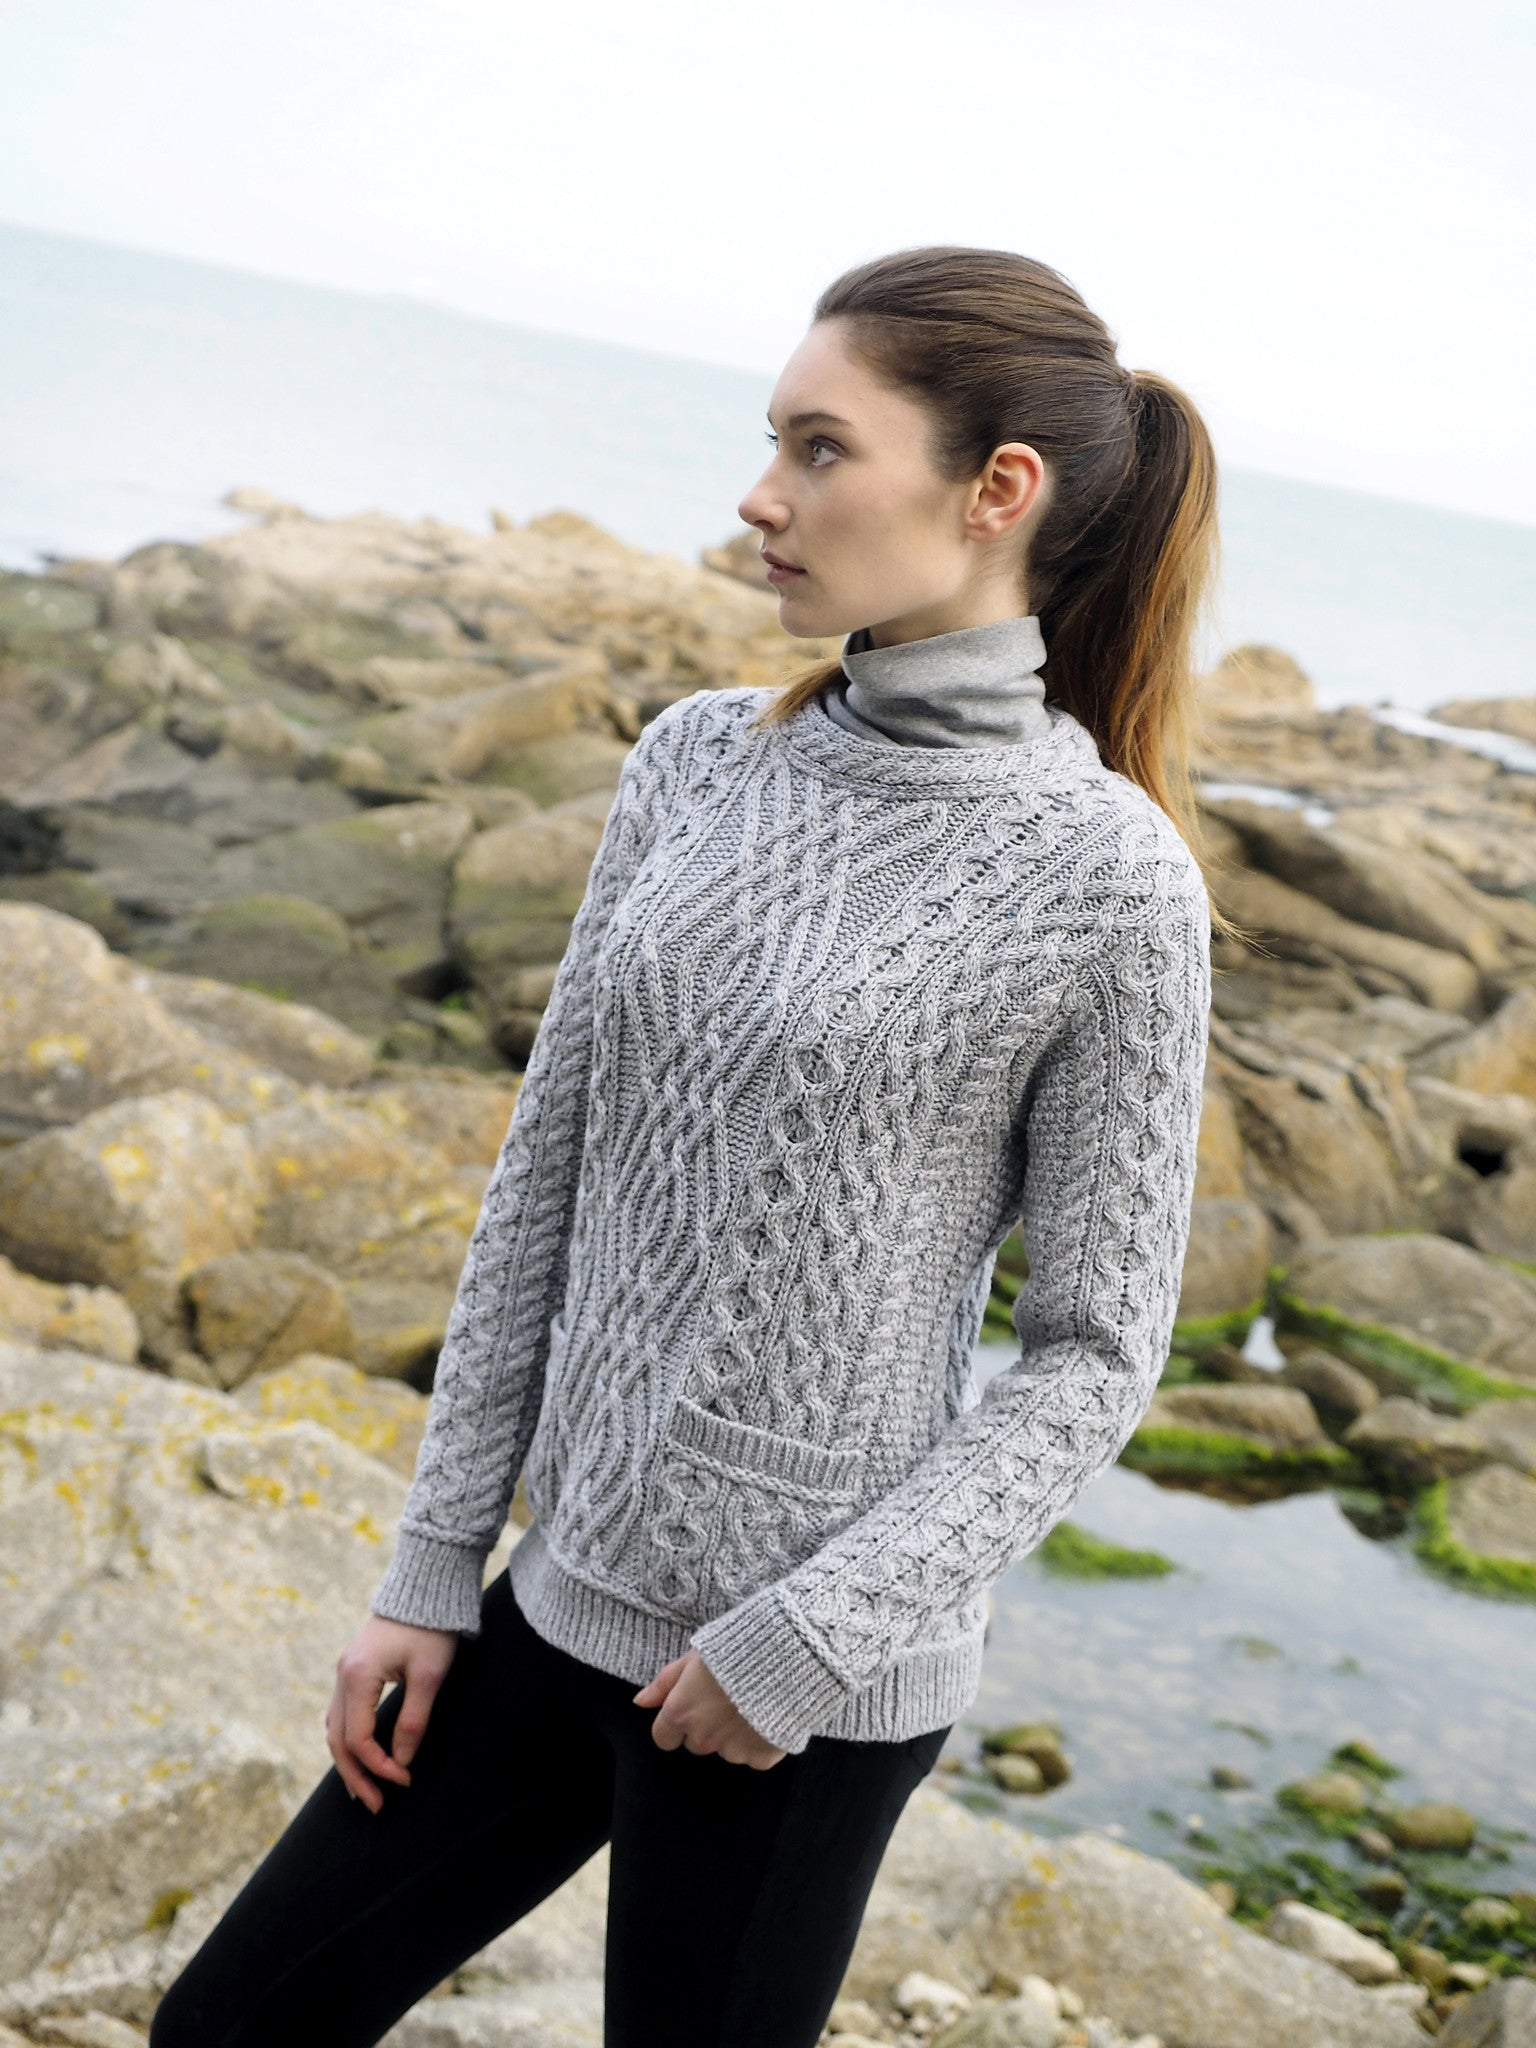 Women  39 s Cable Crew Neck Sweater with Pockets - Soft Grey 78b56498a